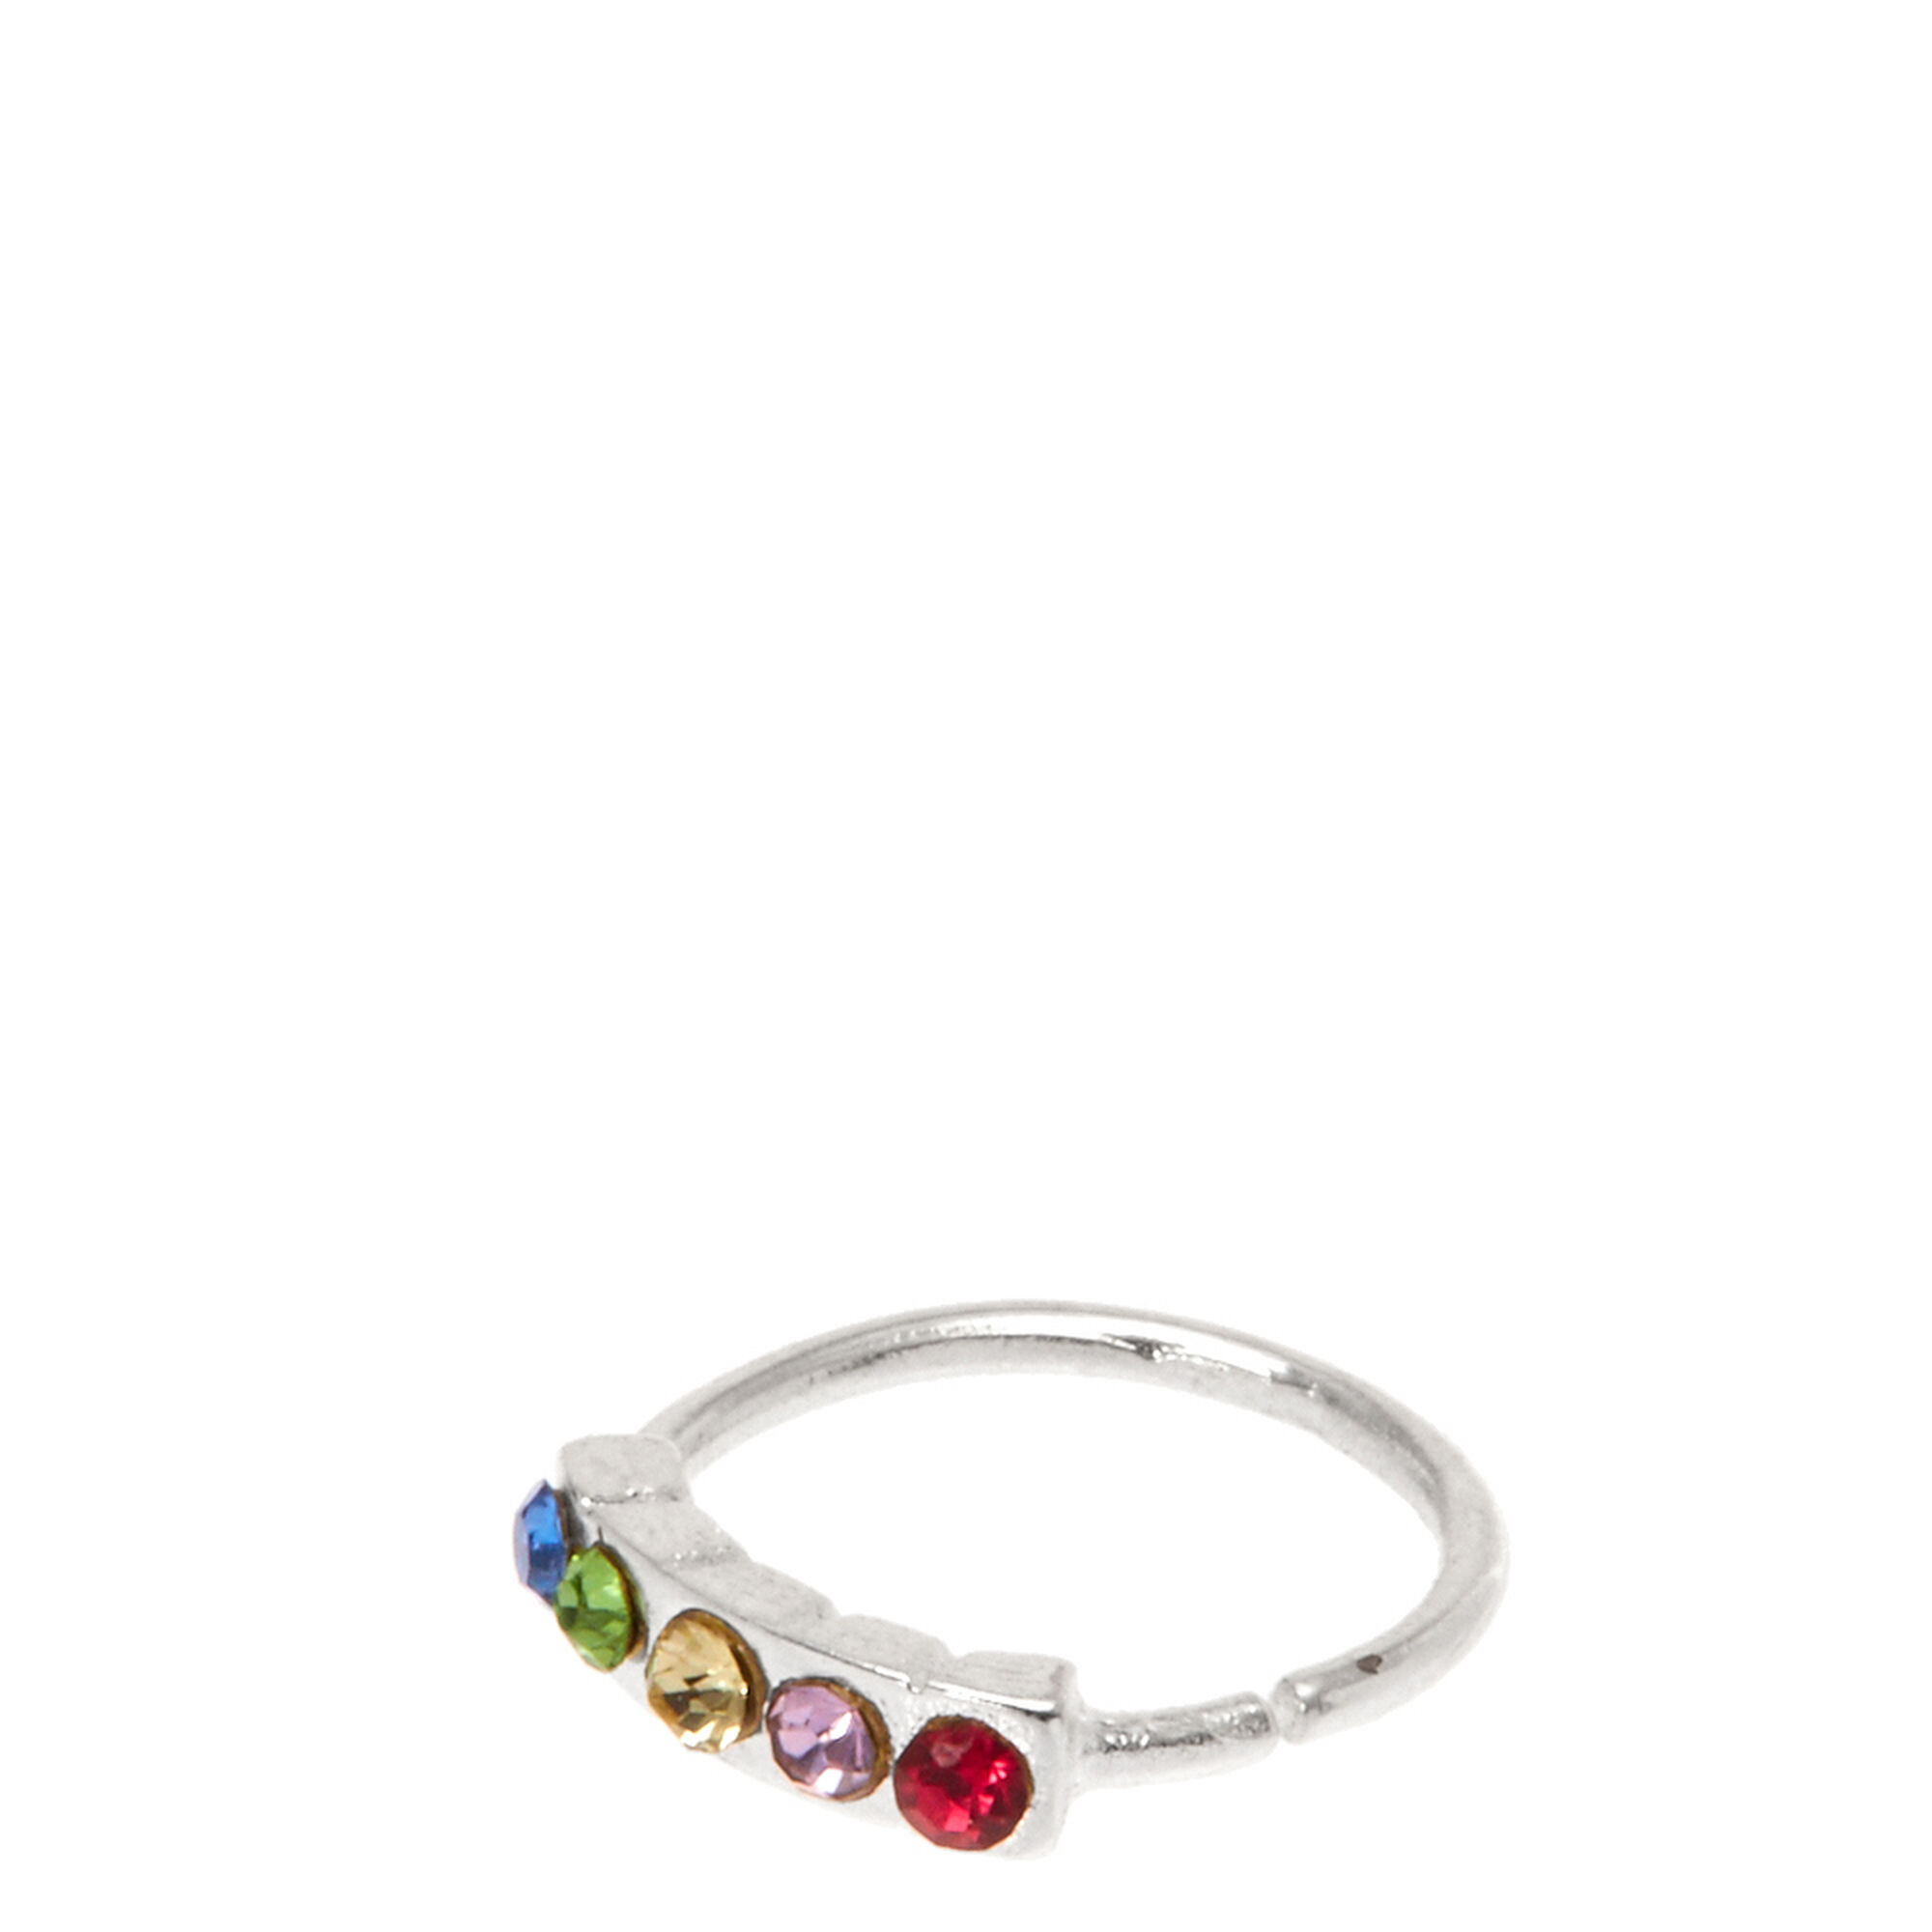 Stainless Steel Rainbow Hoop Nose Ring | Icing US